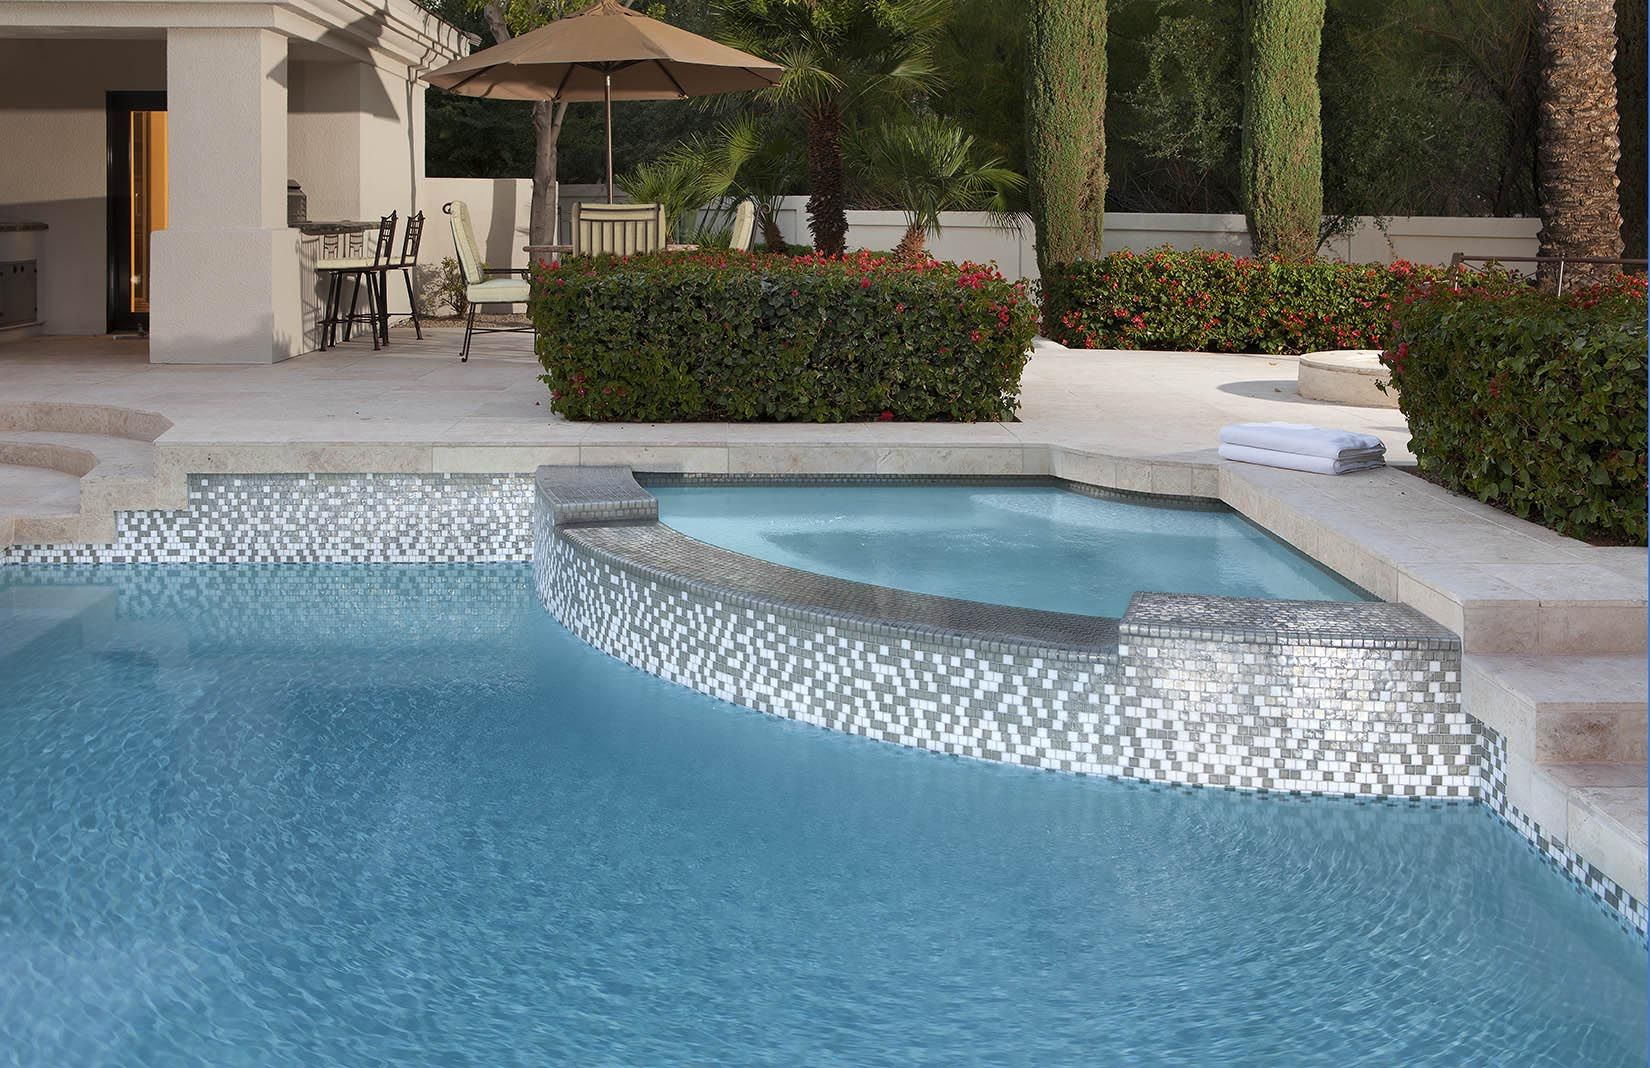 Tile coping for swimming pools swimming pool tiles pool for Pool design tiles